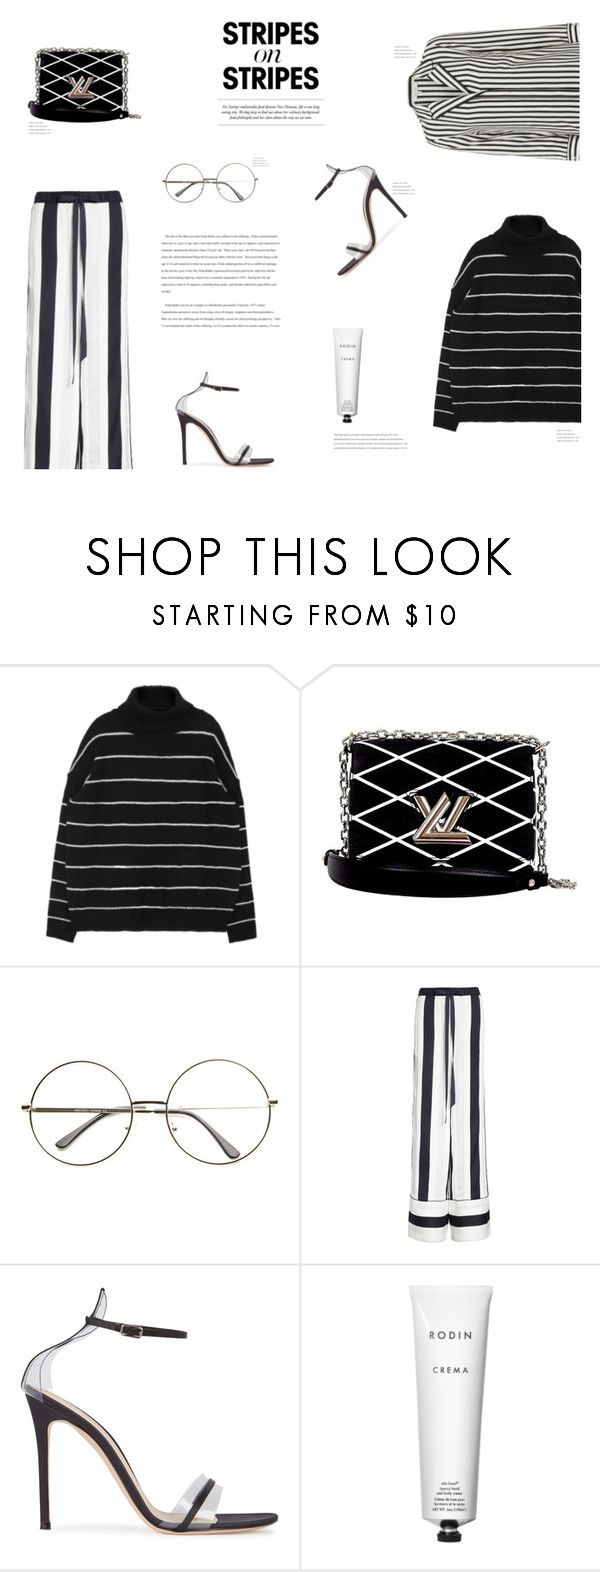 """""""STRIPES"""" by canvas-moods ❤ liked on Polyvore featuring Louis Vuitton, ADAM, Gianvito Rossi, Rodin, Frame, stripesonstripes and PatternChallenge"""